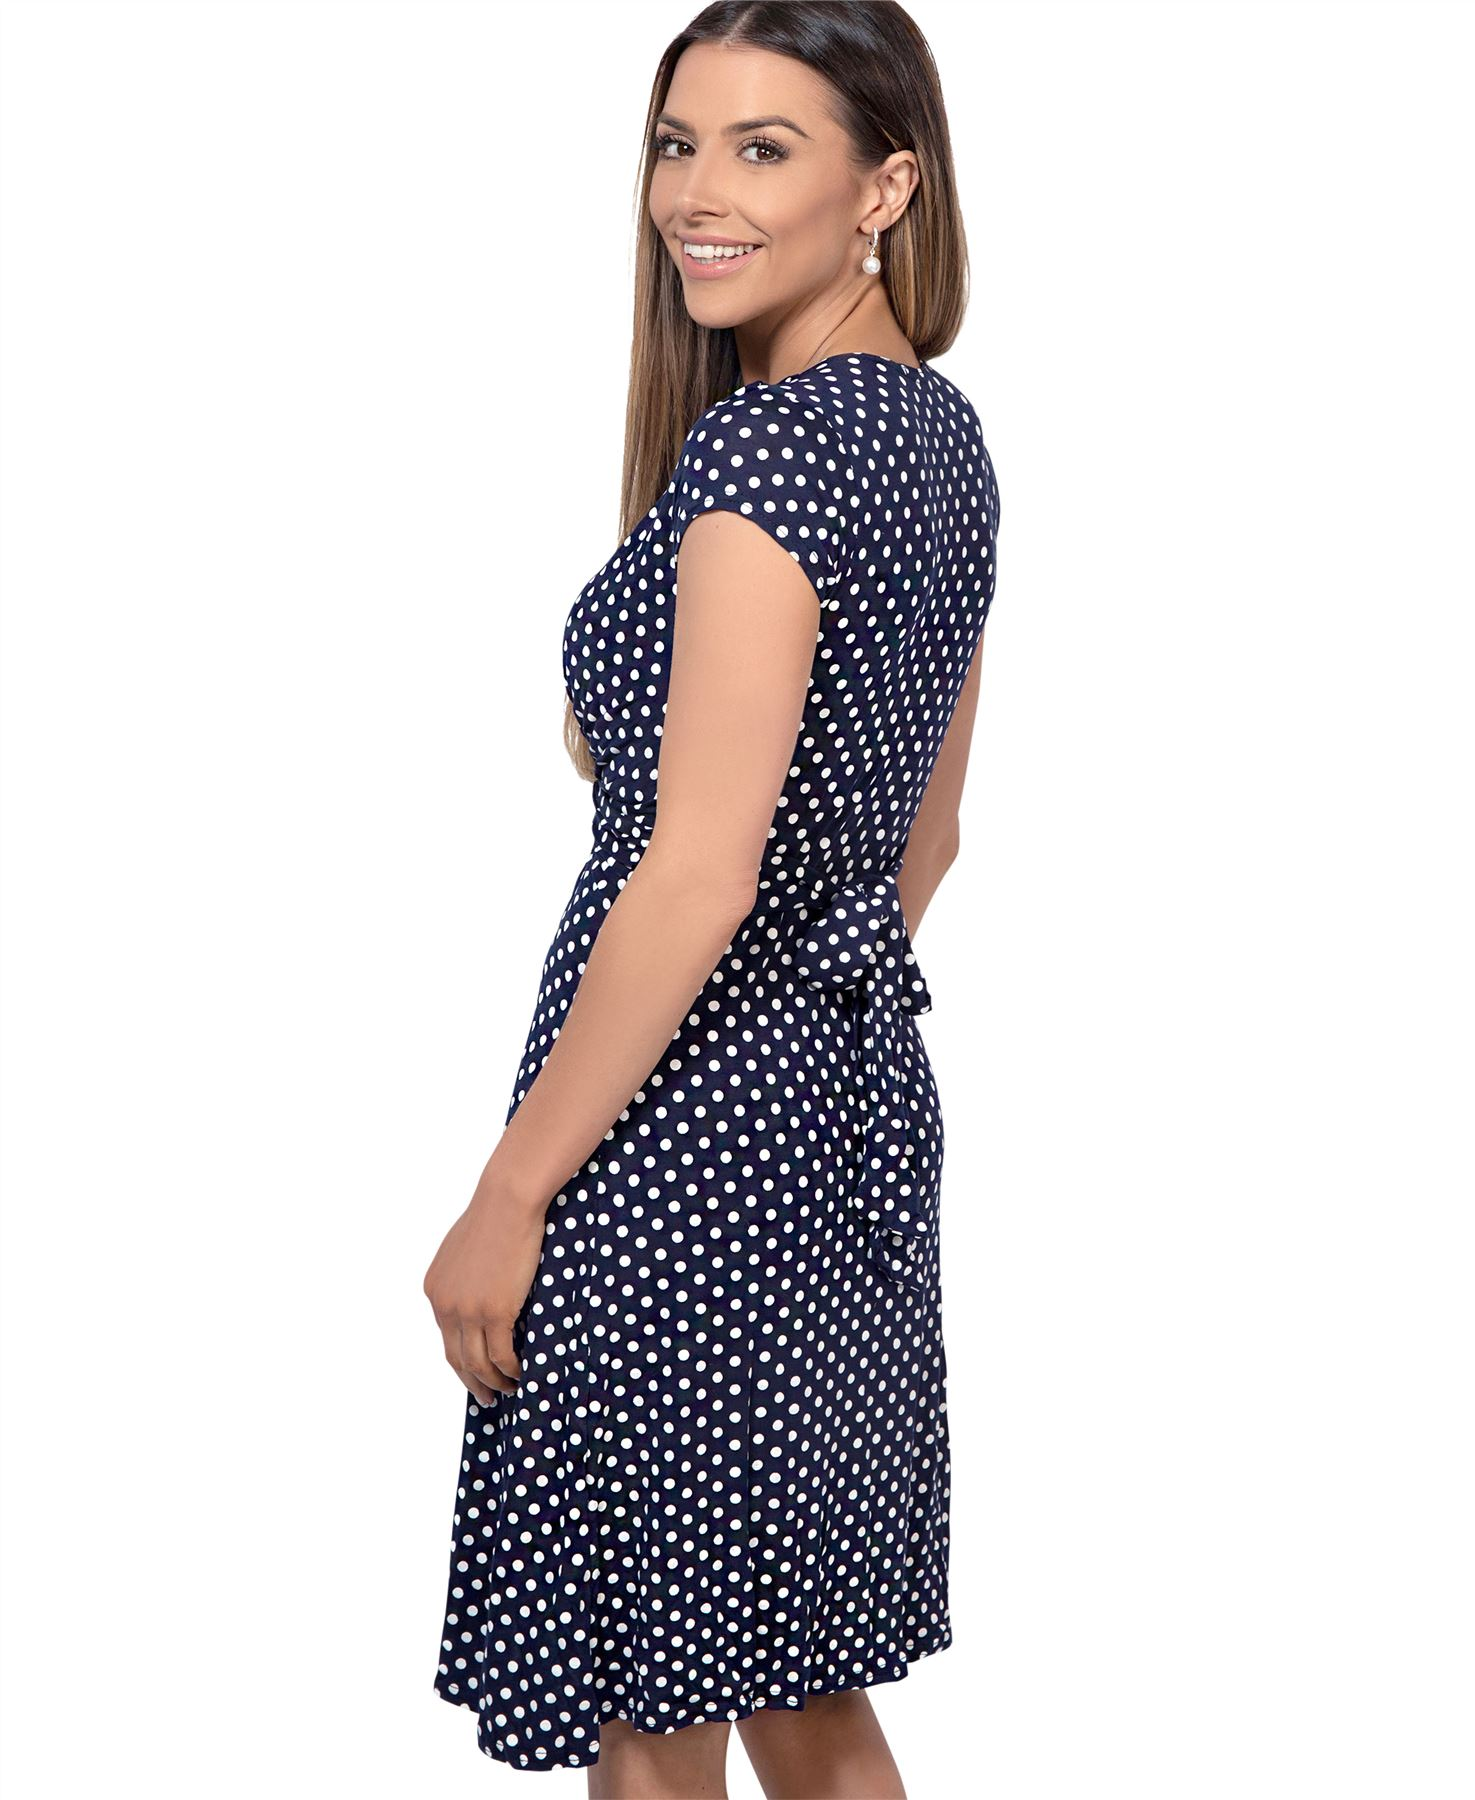 Polka-Dot-Dress-Pleated-Skirt-V-Neck-Mini-Front-Knot-Wrap-Swing-Top-Black-Navy thumbnail 7